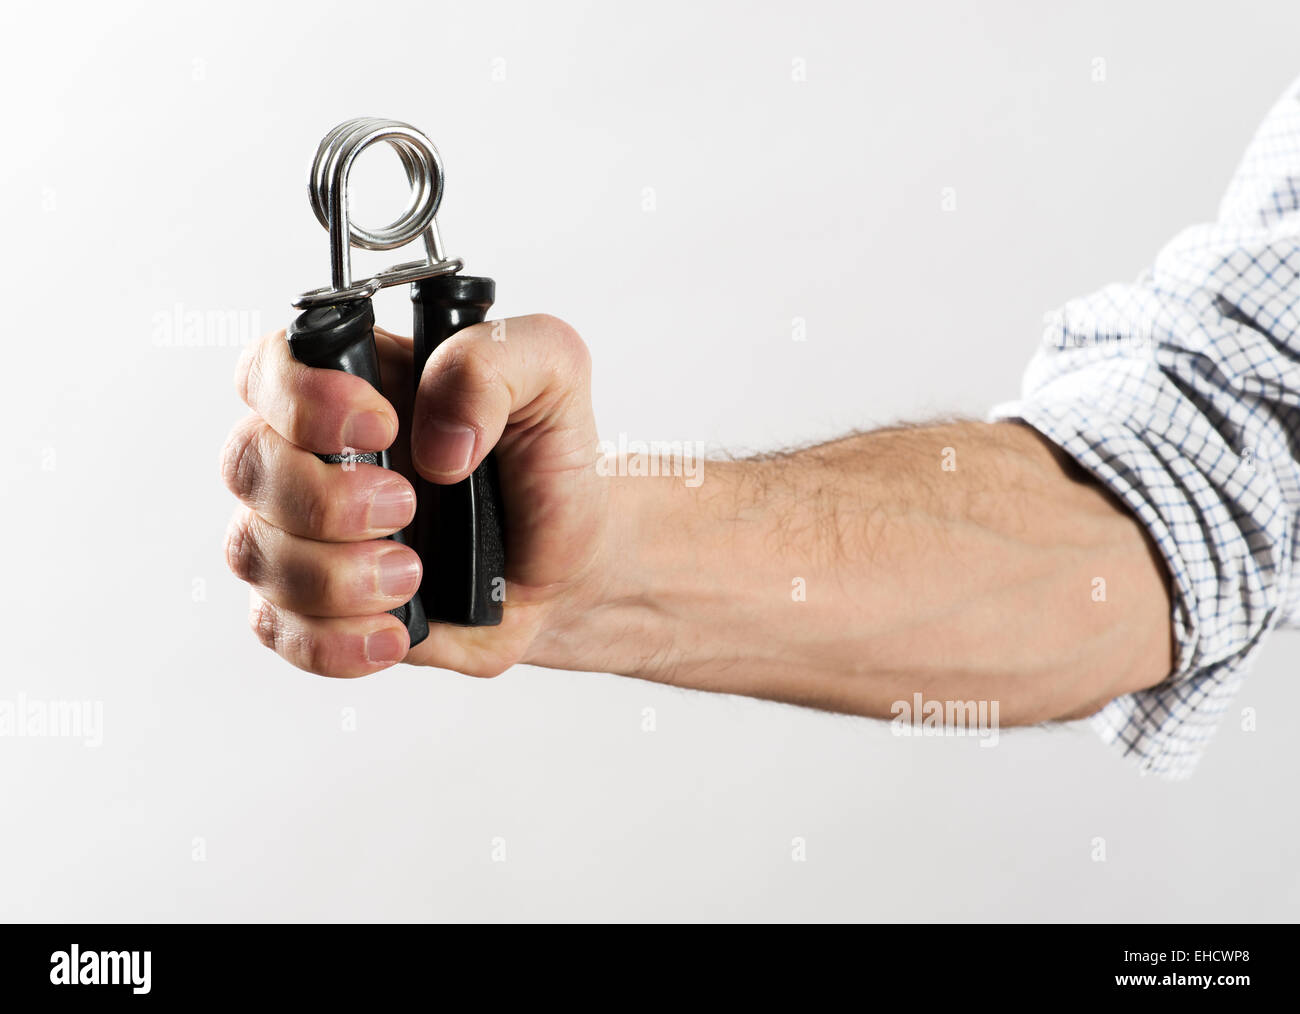 Male Hand with Rolled Up Shirt Sleeve Exercising Strength Using Hand Gripper Against White Background - Stock Image